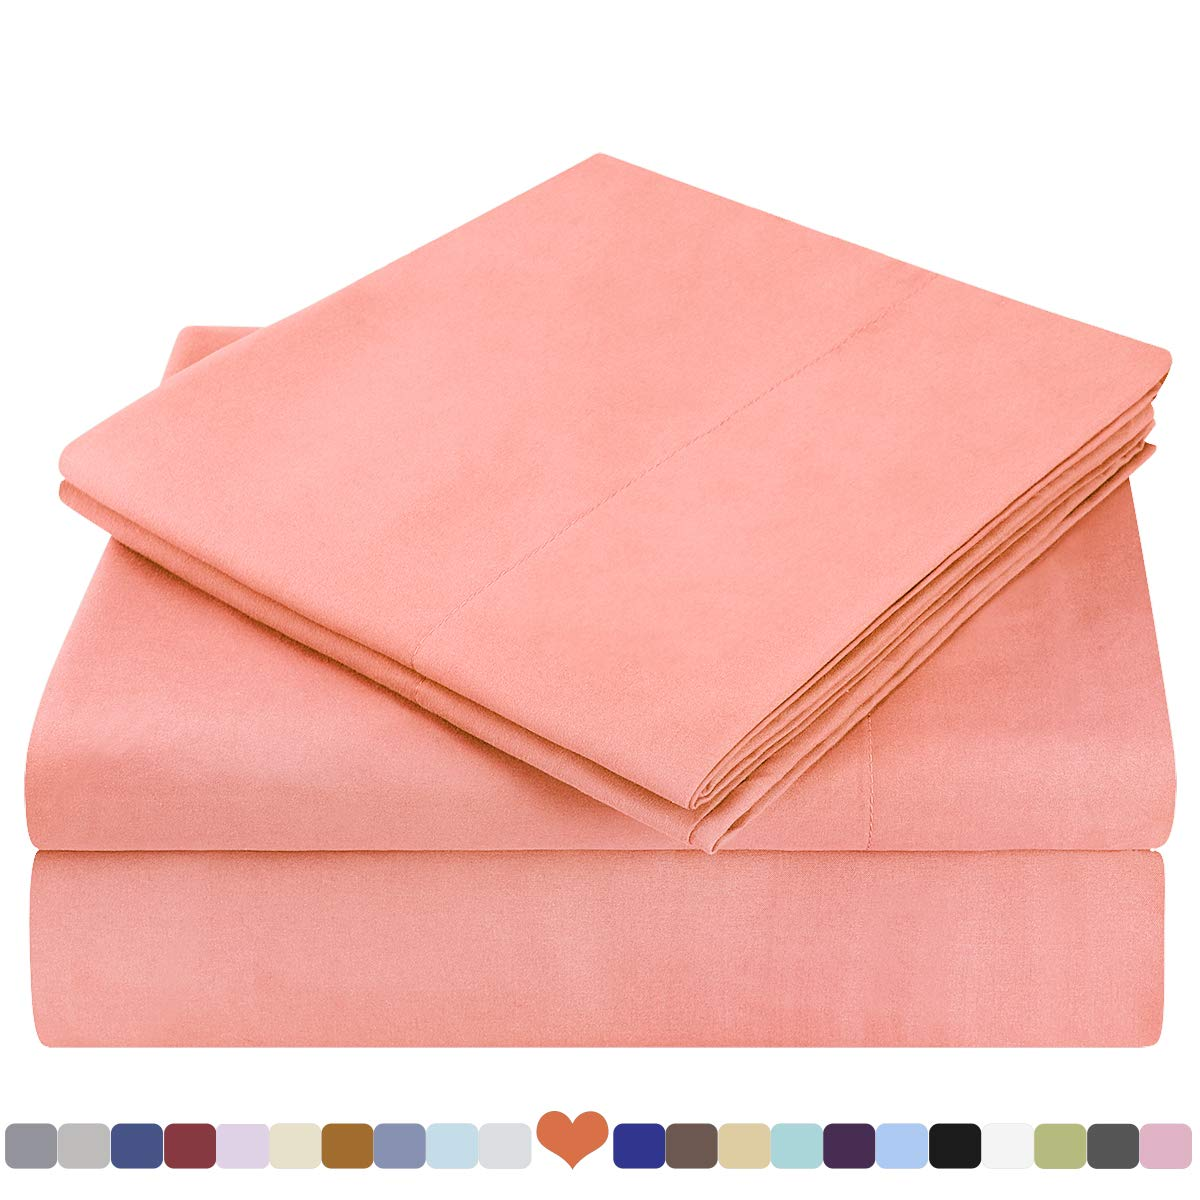 HOMEIDEAS Bed Sheets Set Extra Soft Brushed Microfiber 1800 Bedding Sheets - Deep Pocket, Wrinkle & Fade Free - 4 Piece(Queen,Coral)